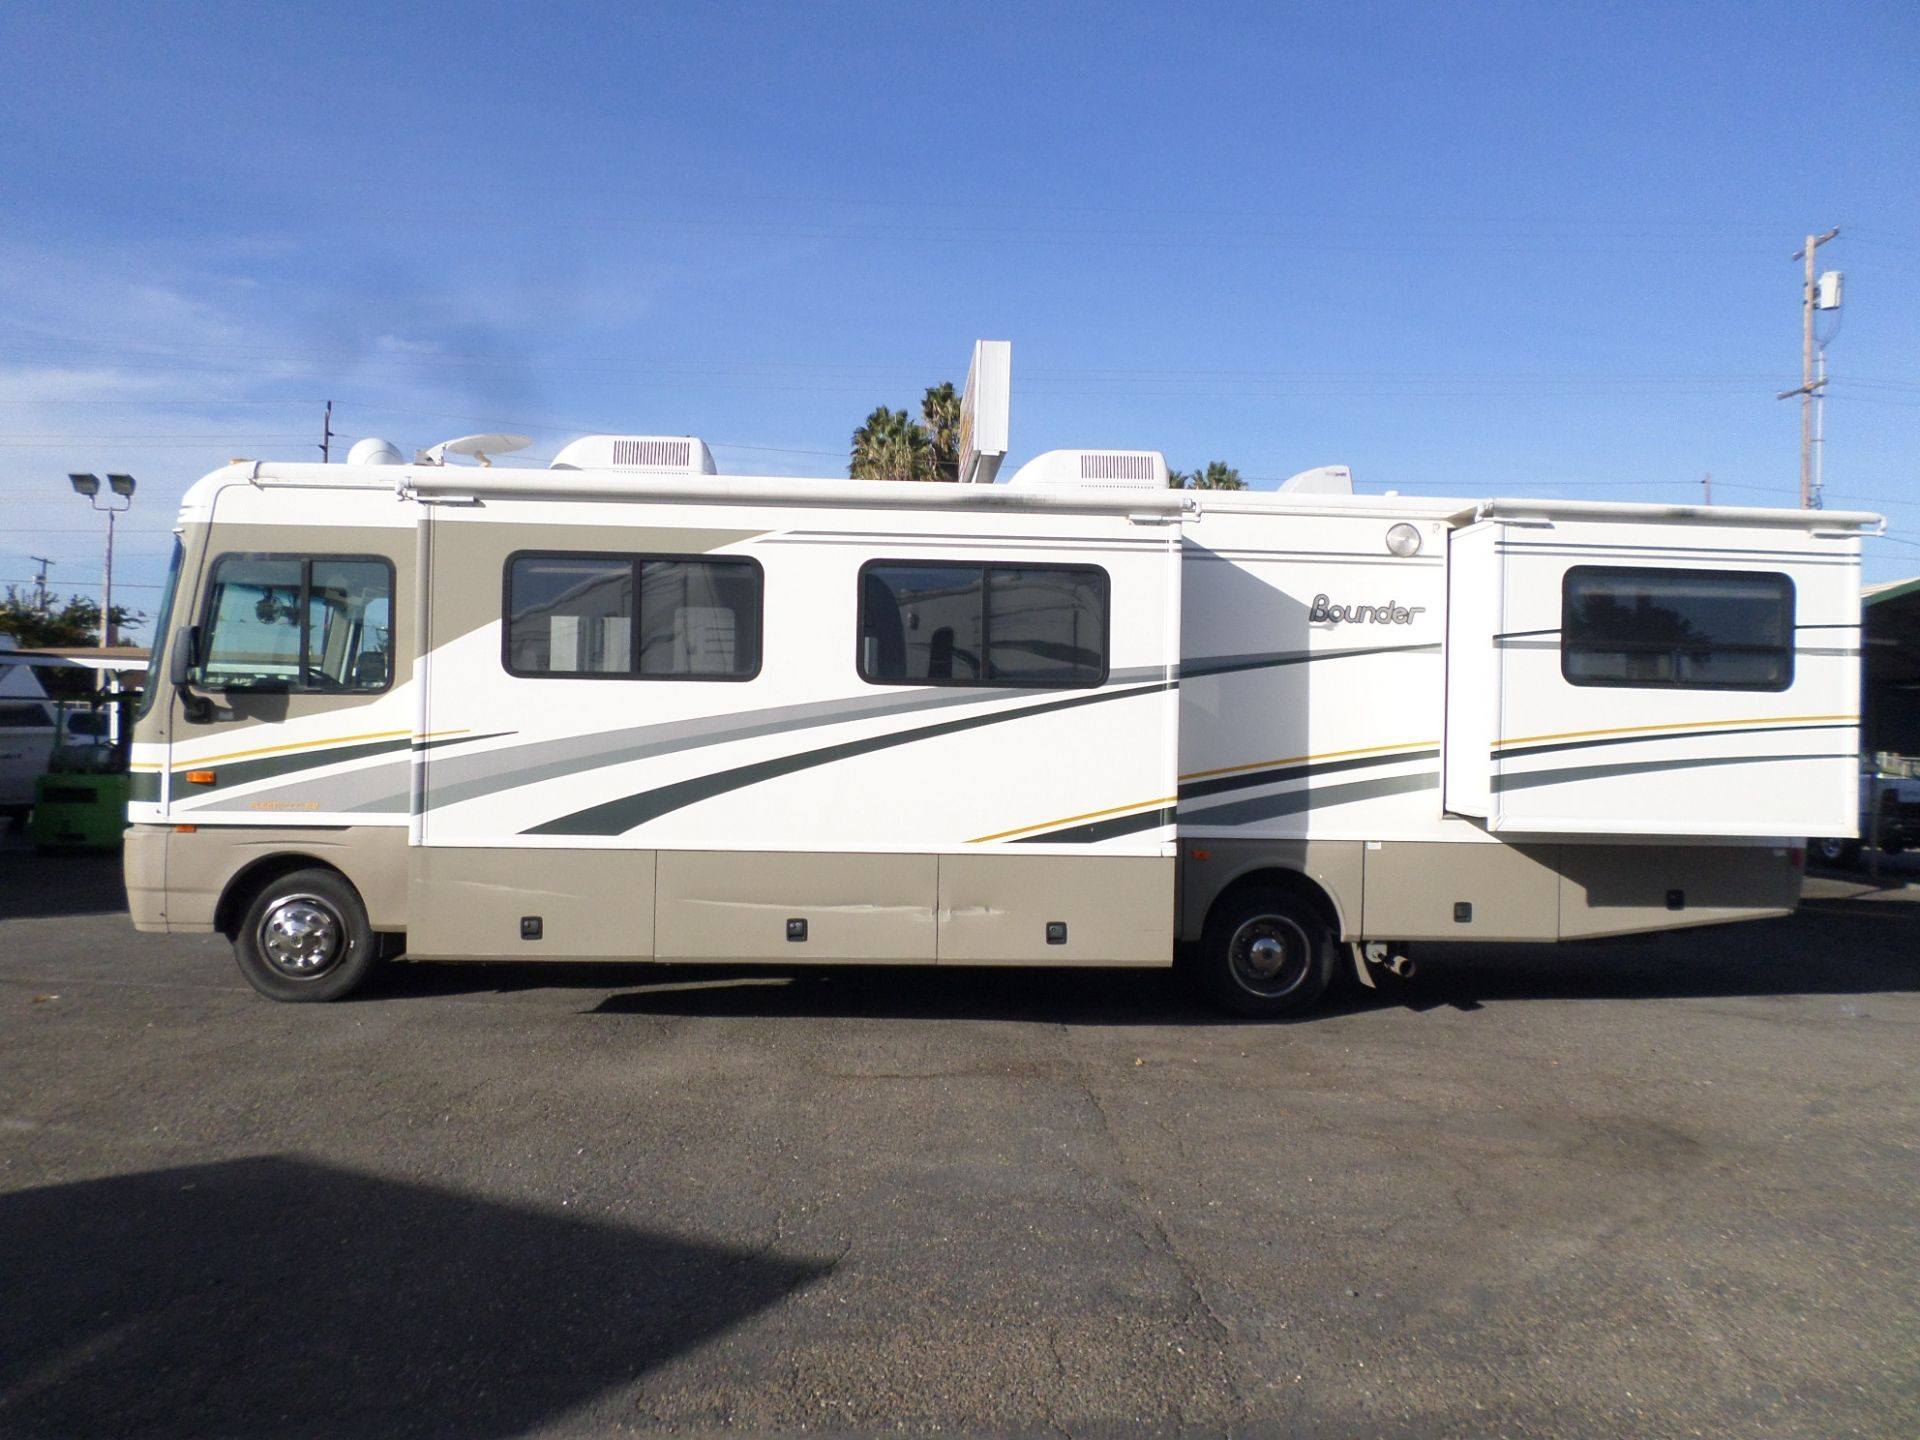 2004 Fleetwood Bounder Class A Motorhome Motorhome Rv For Sale